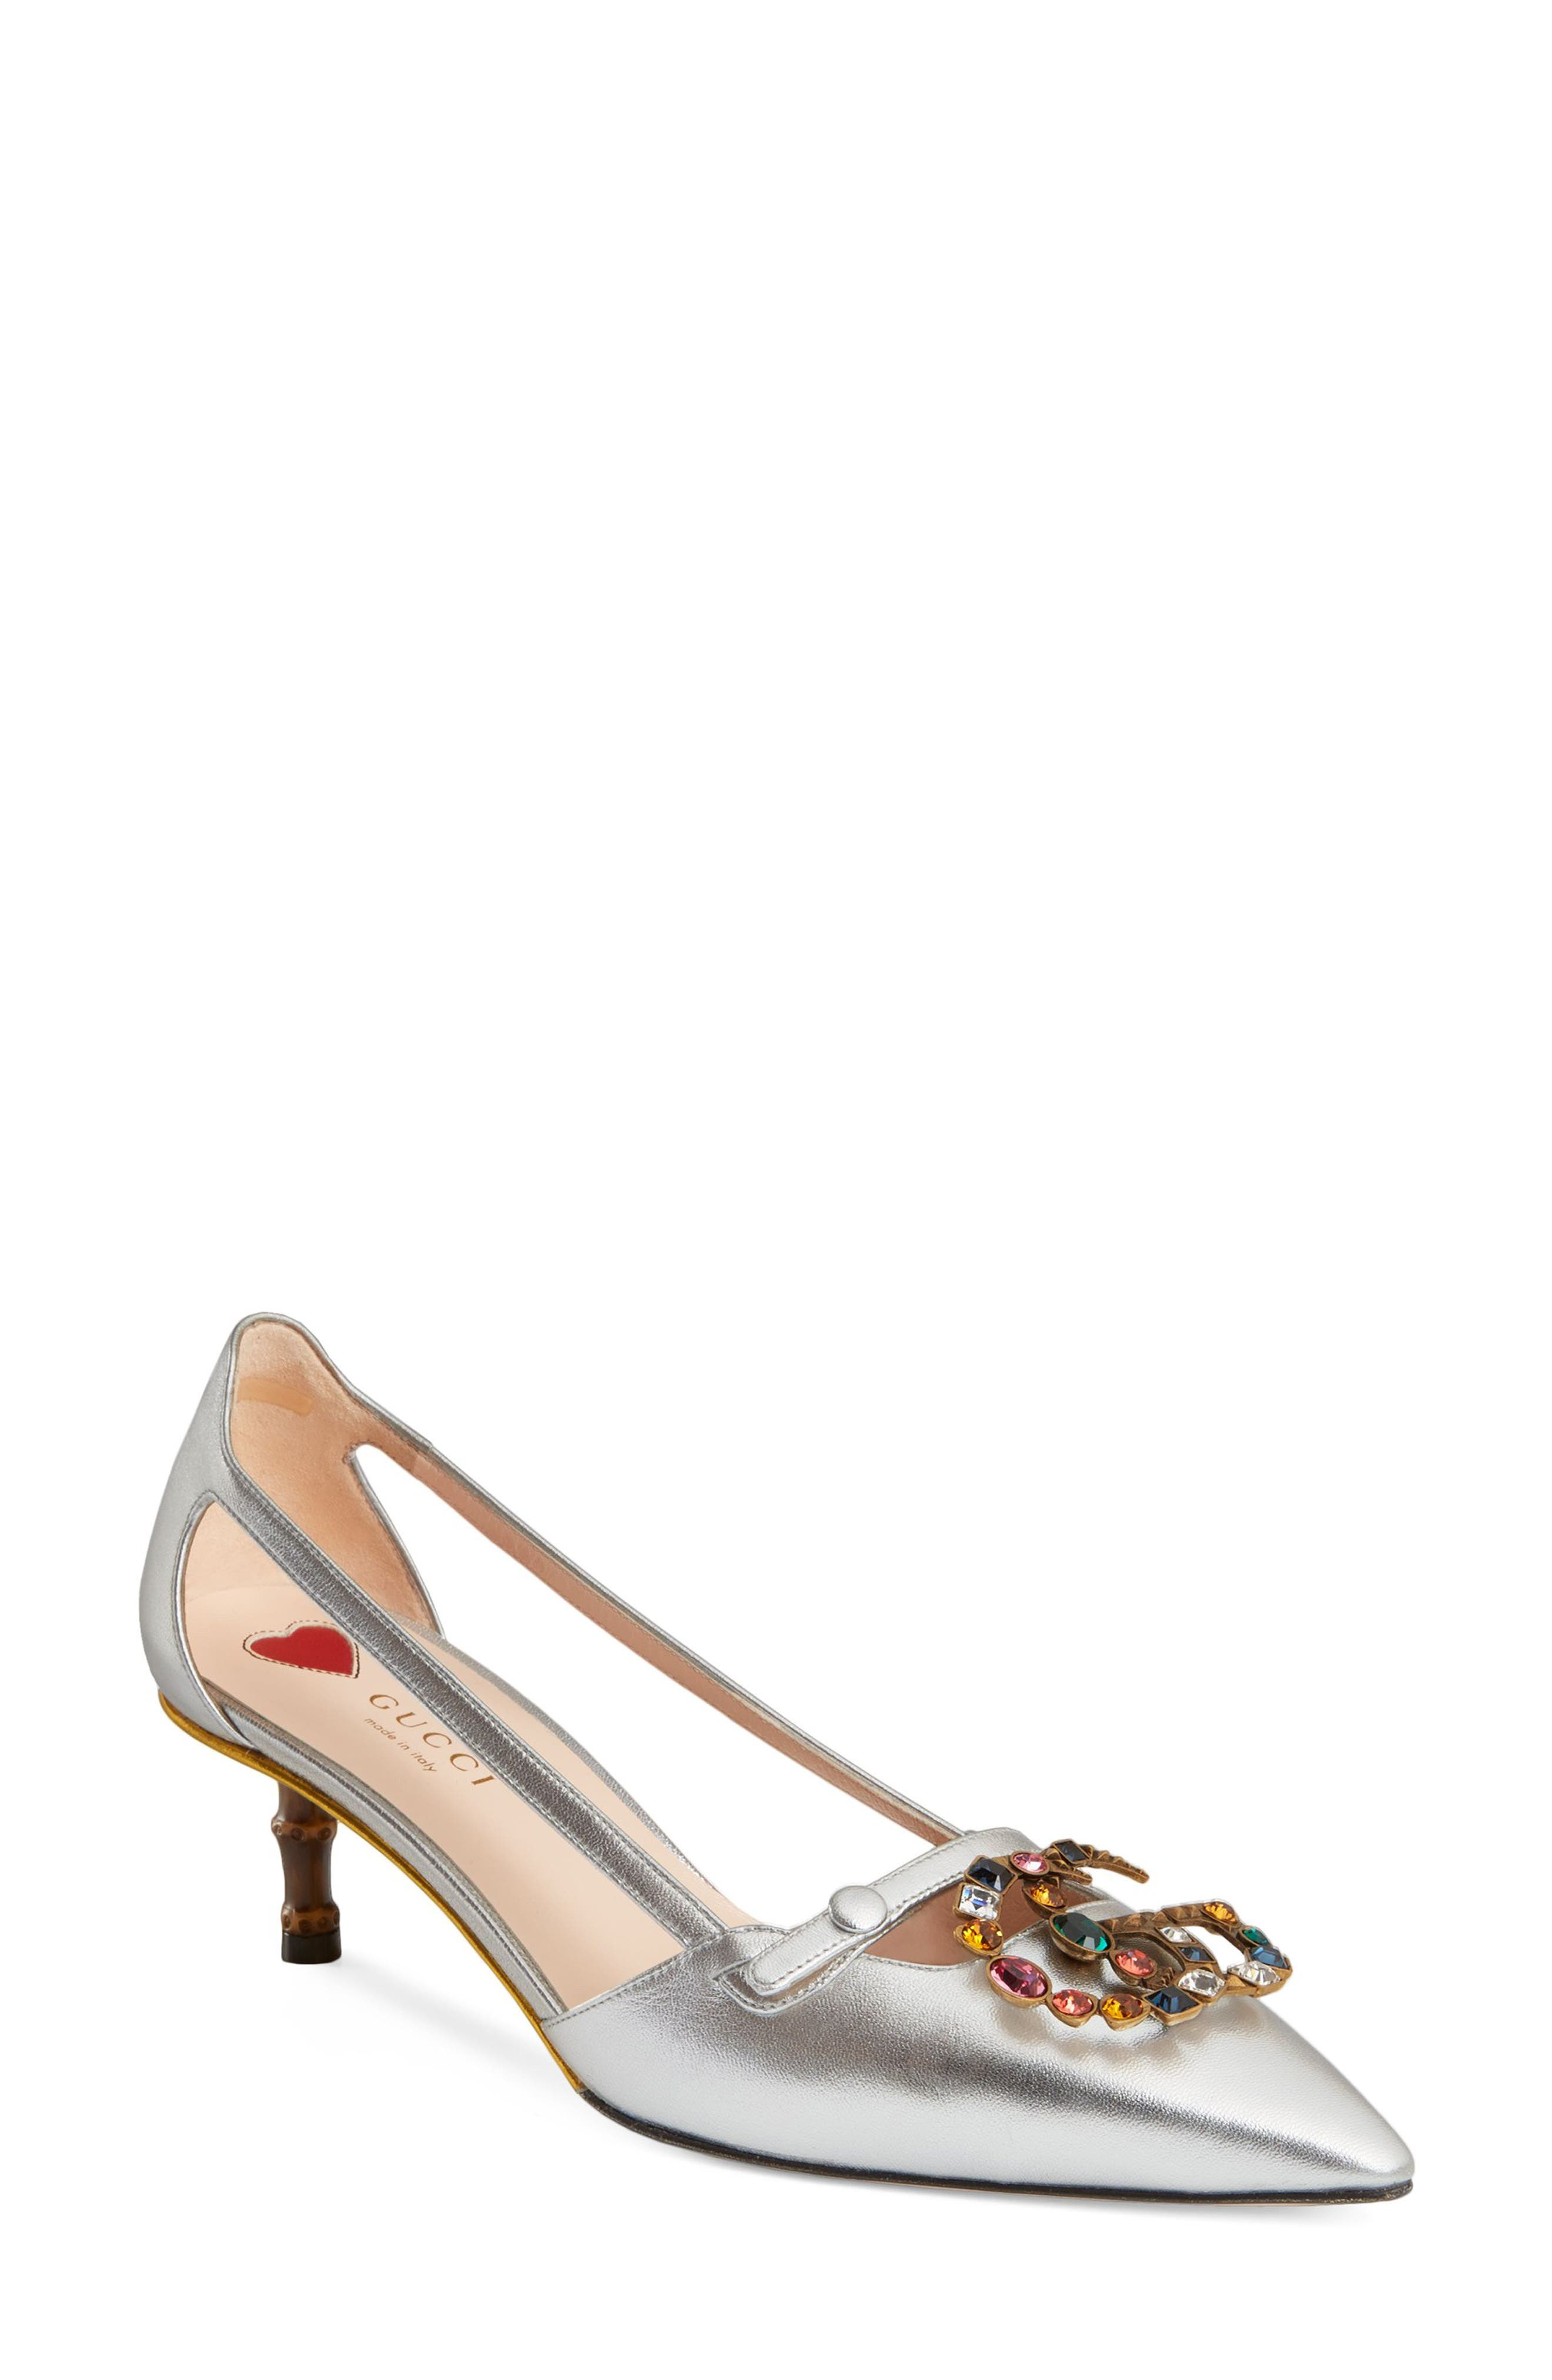 Gucci Unia Embellished Pump (Women)